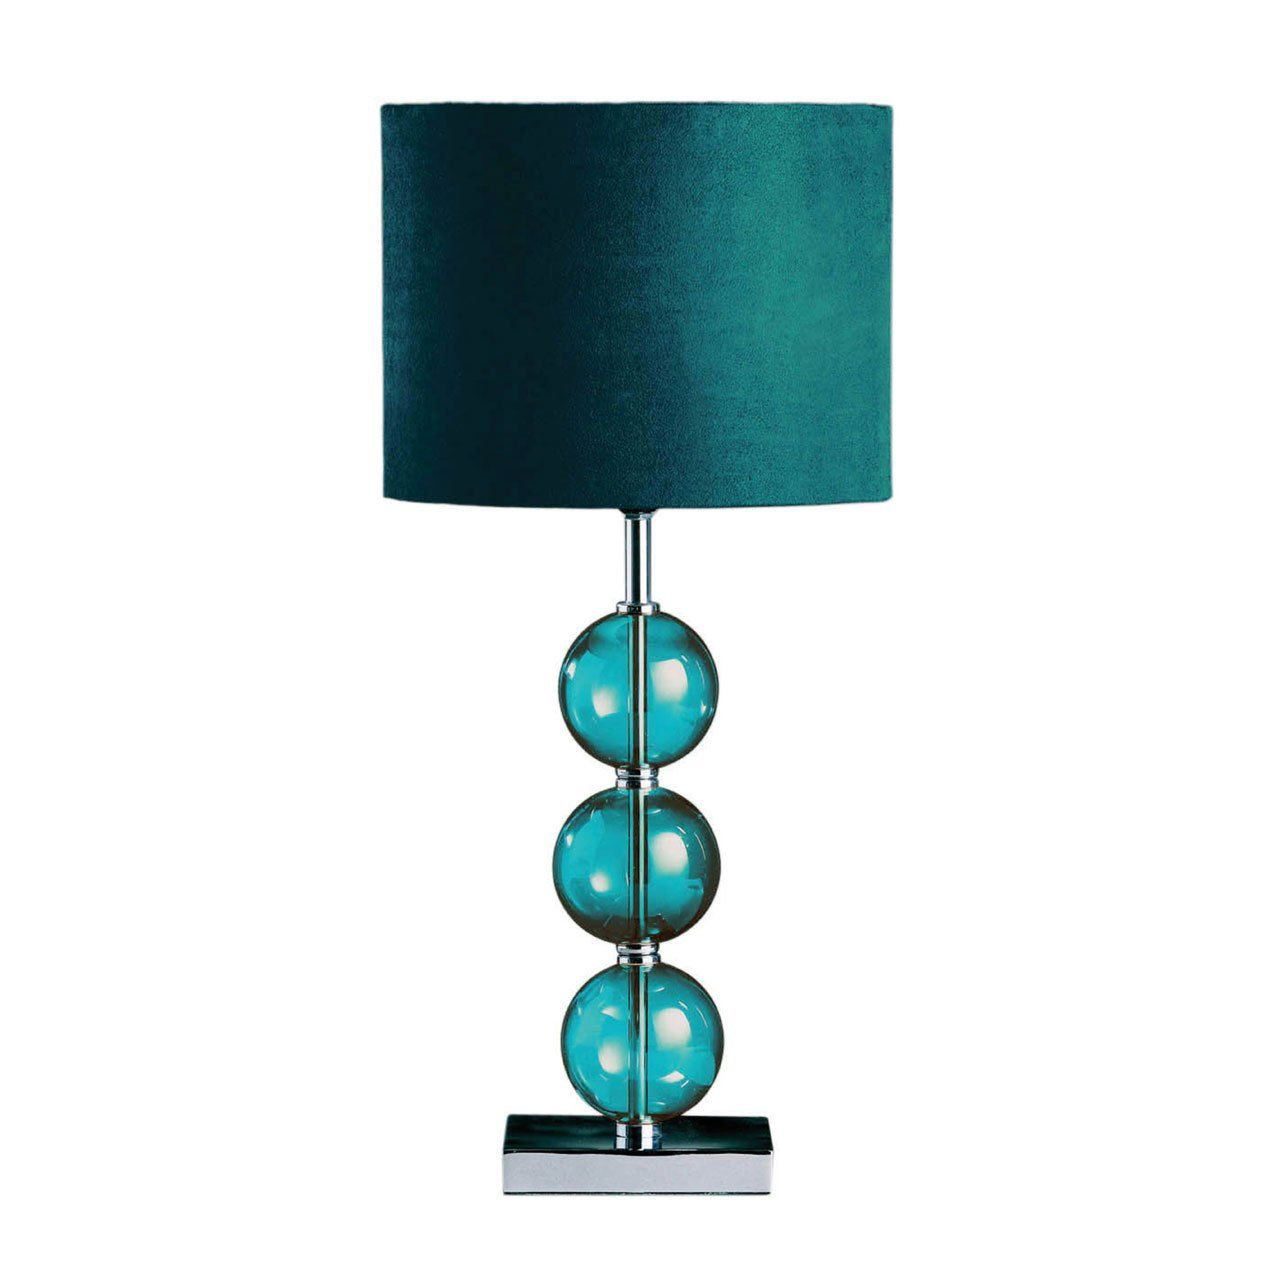 Beautiful Inspire Glass Ball Table Lamp Teal Amazon Co Uk Lighting Teal Lamp Teal Bedside Tables Teal Table Lamps